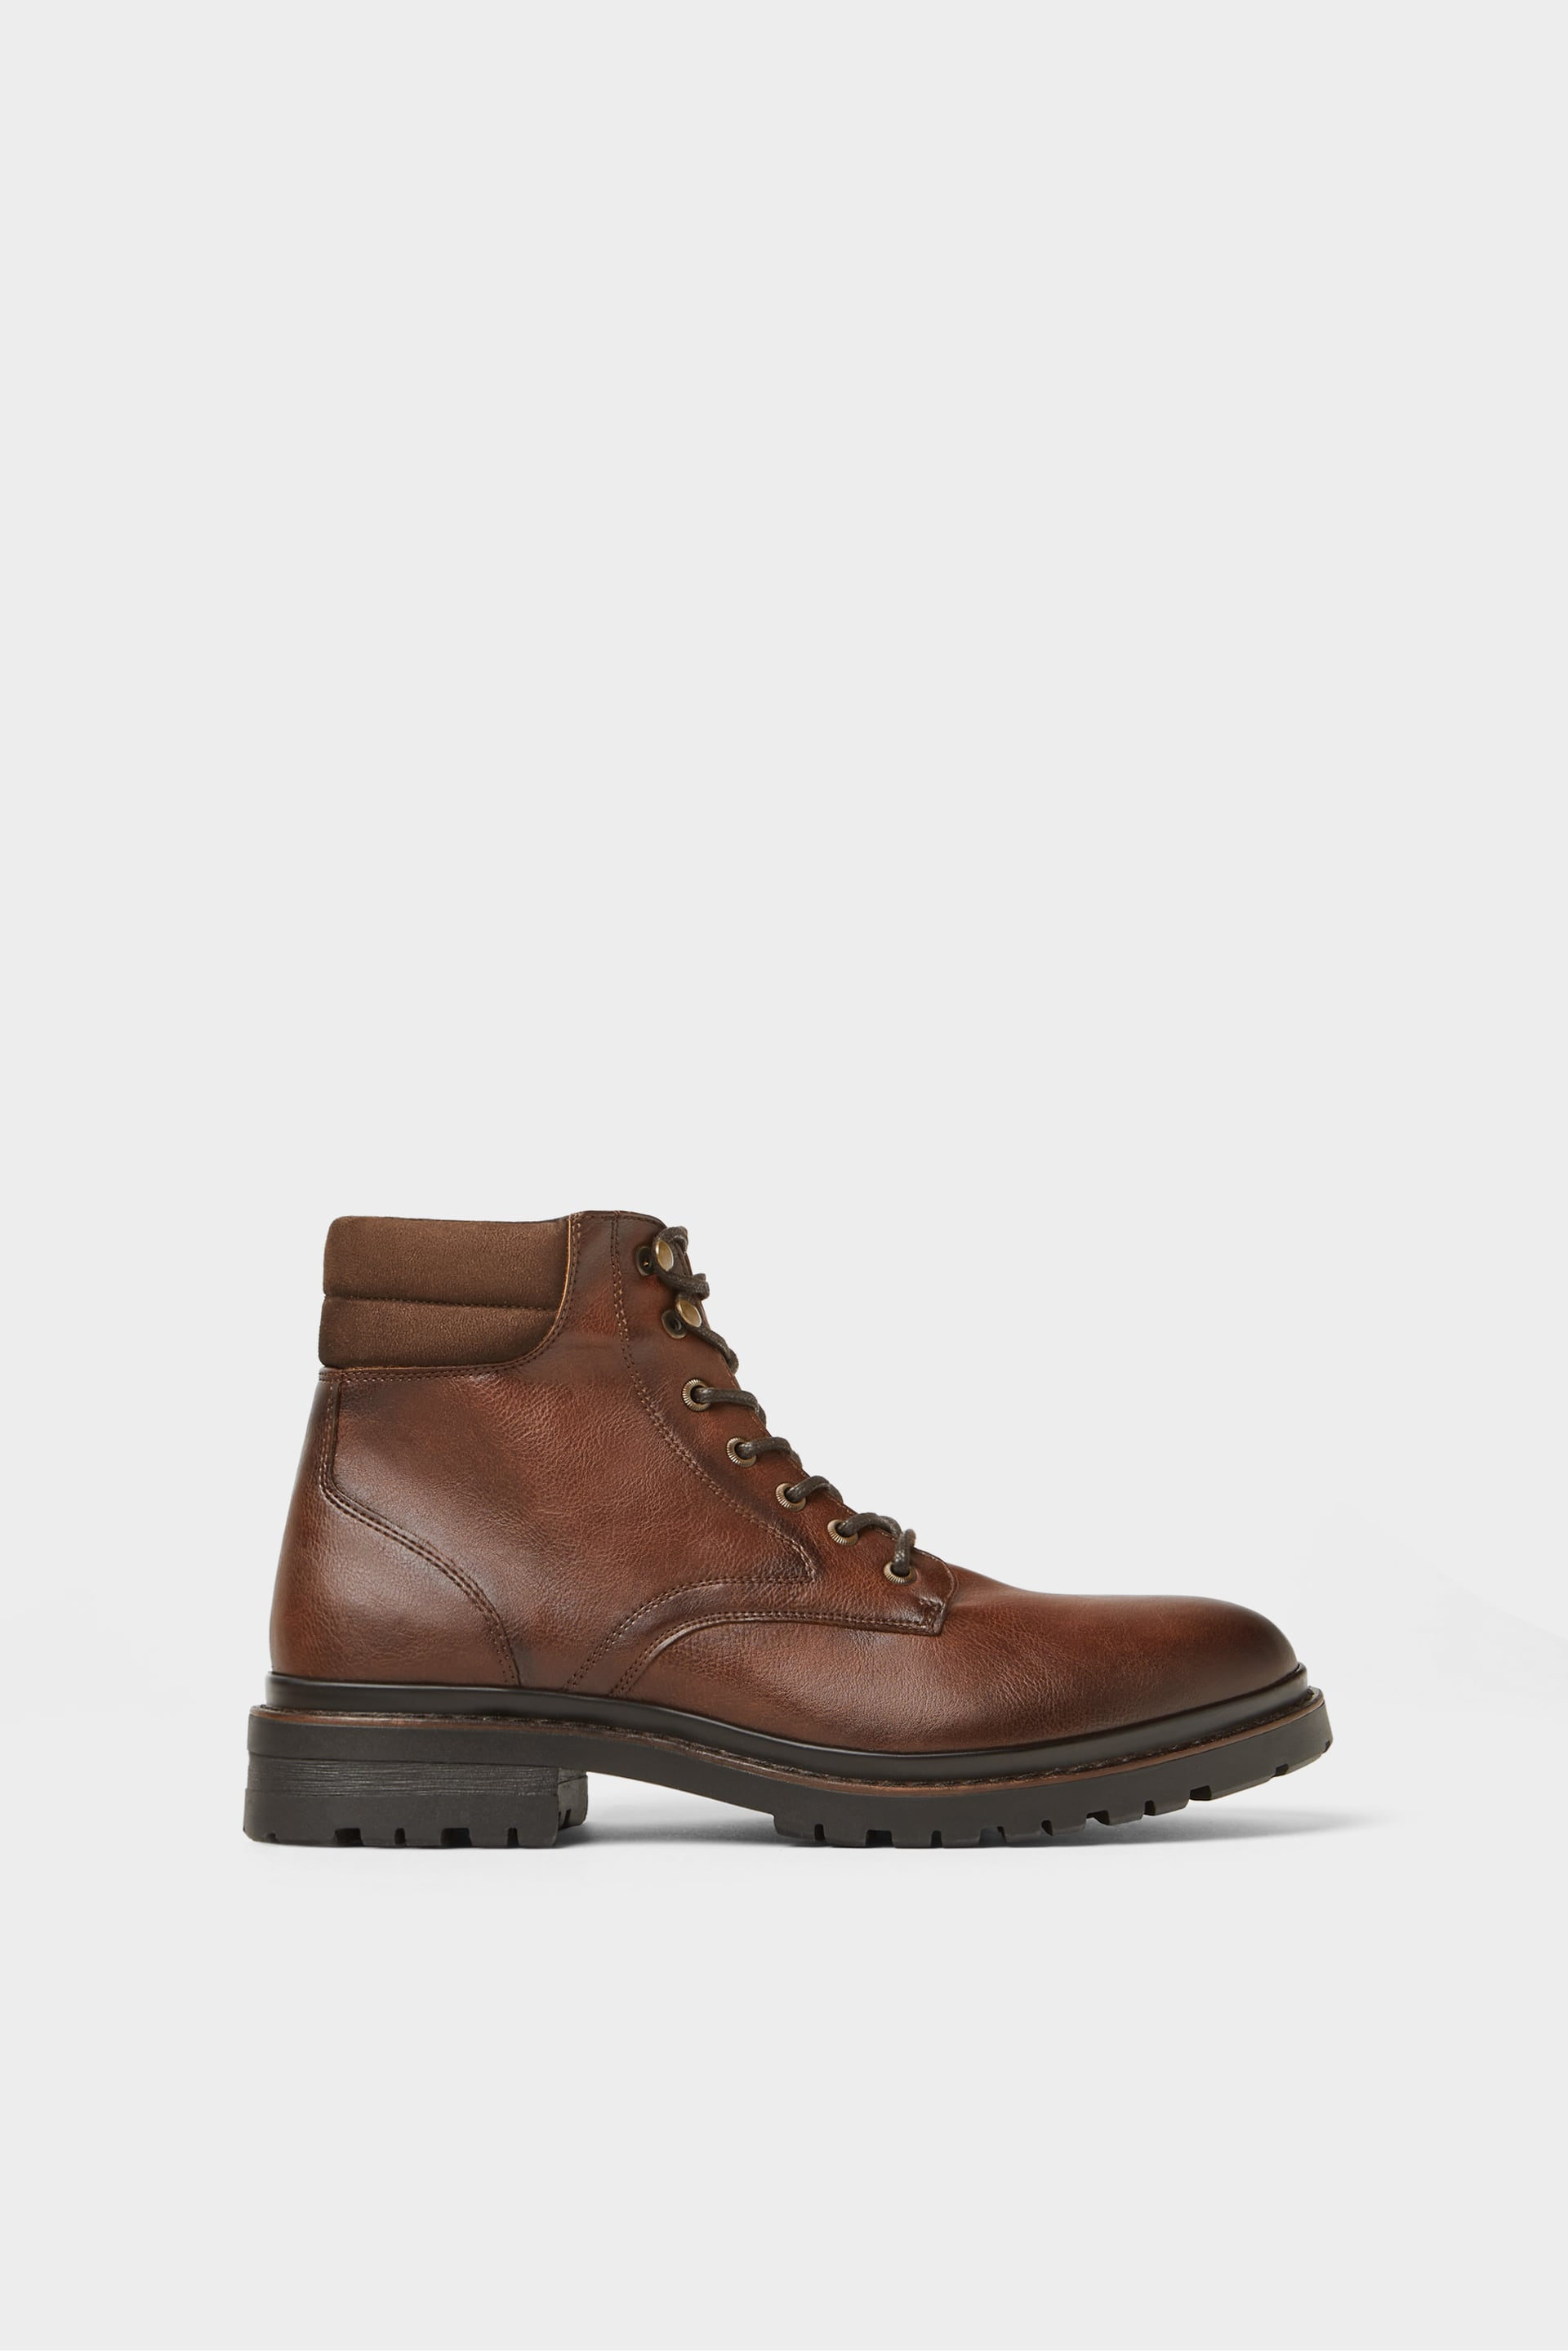 BROWN LACE-UP BOOTS WITH TRACK SOLE